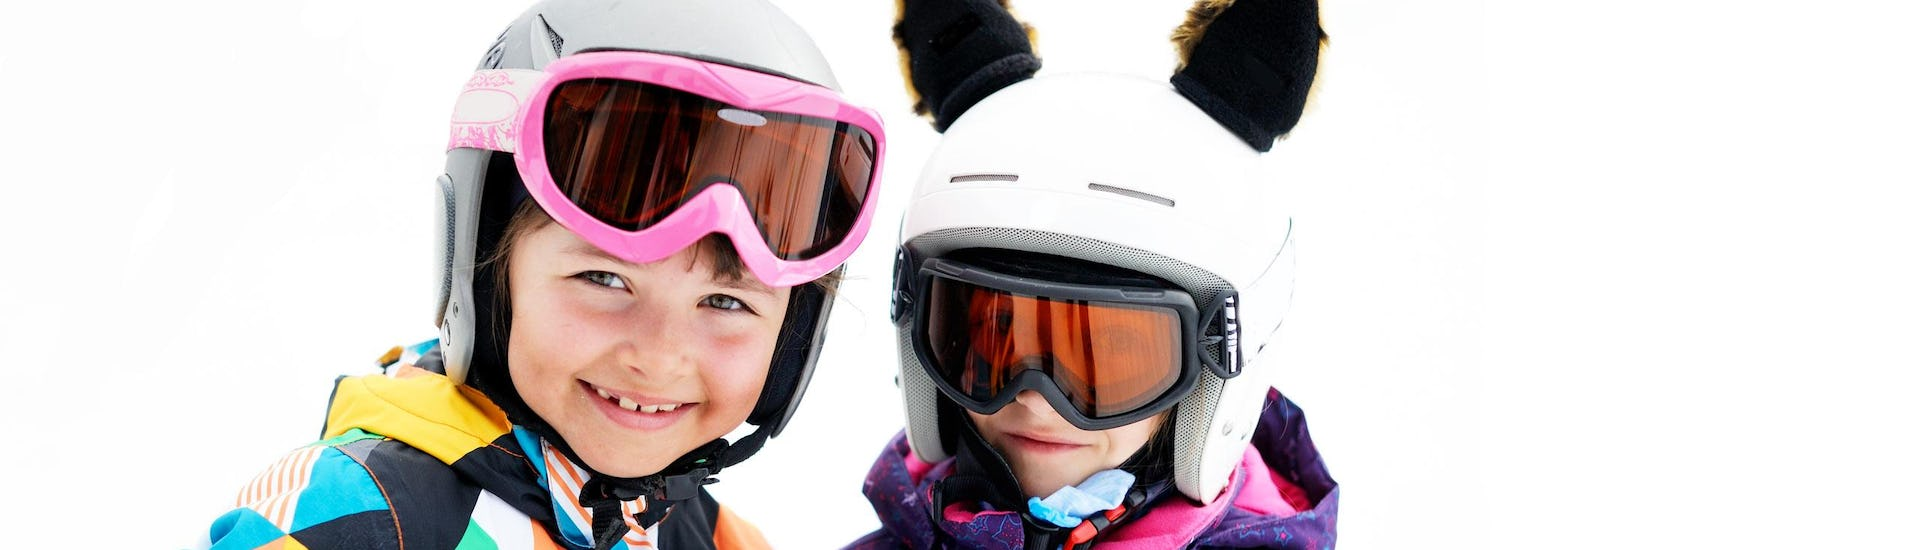 Two young children smiling at the camera during one of the Ski Instructor Private for Kids - All Ages organised by Skischule Snow Academy Monika Berwein.